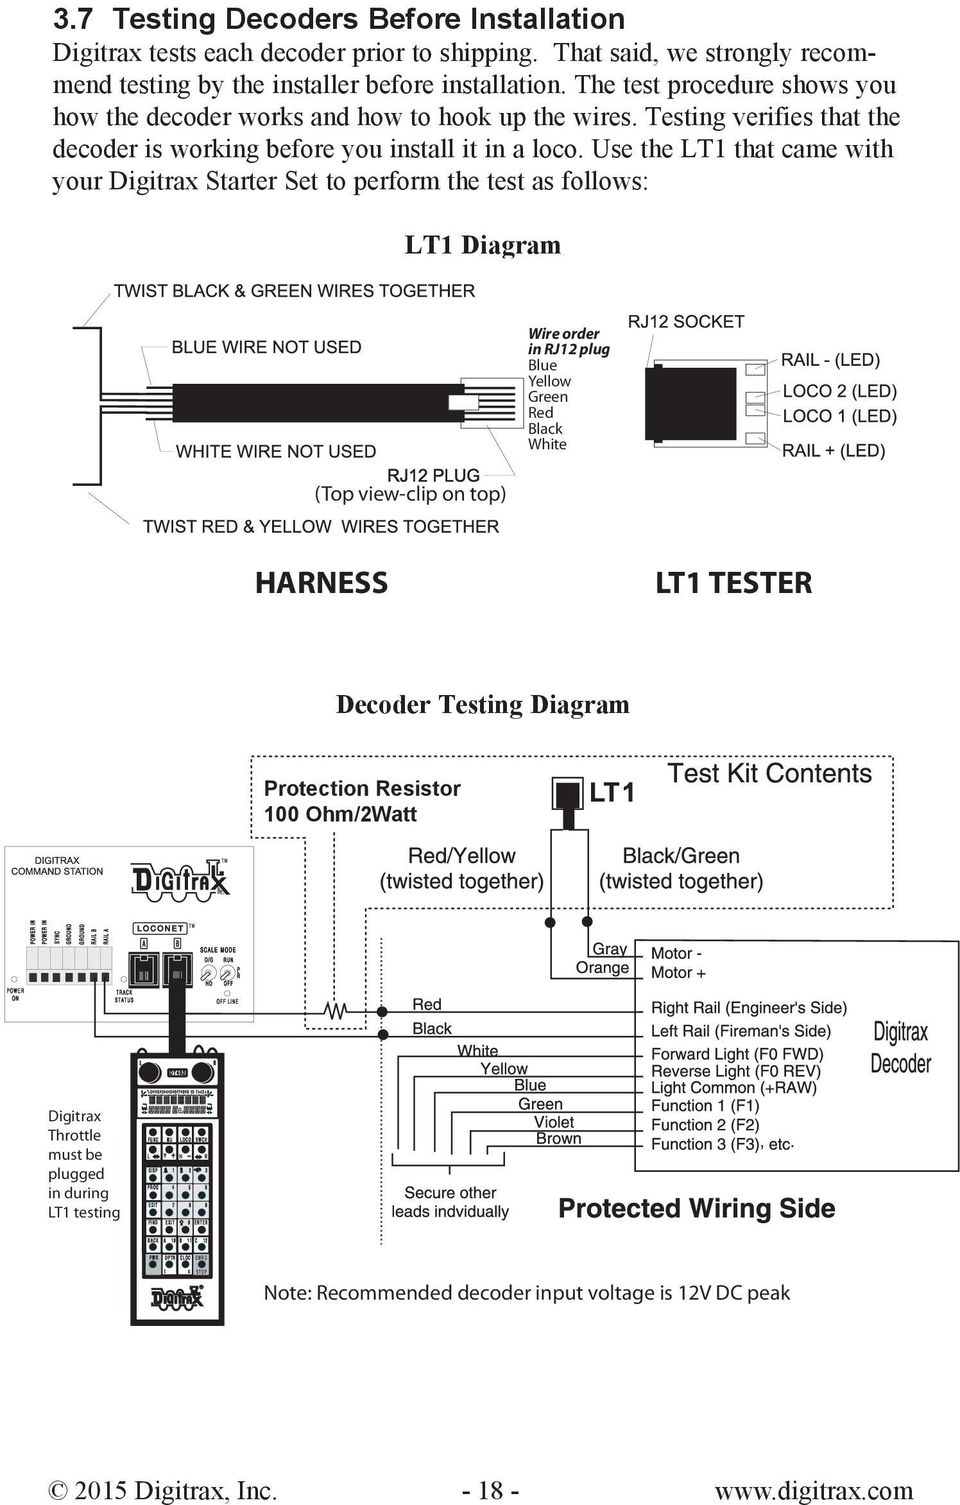 hight resolution of use the lt1 that came with your digitrax starter set to perform the test as follows